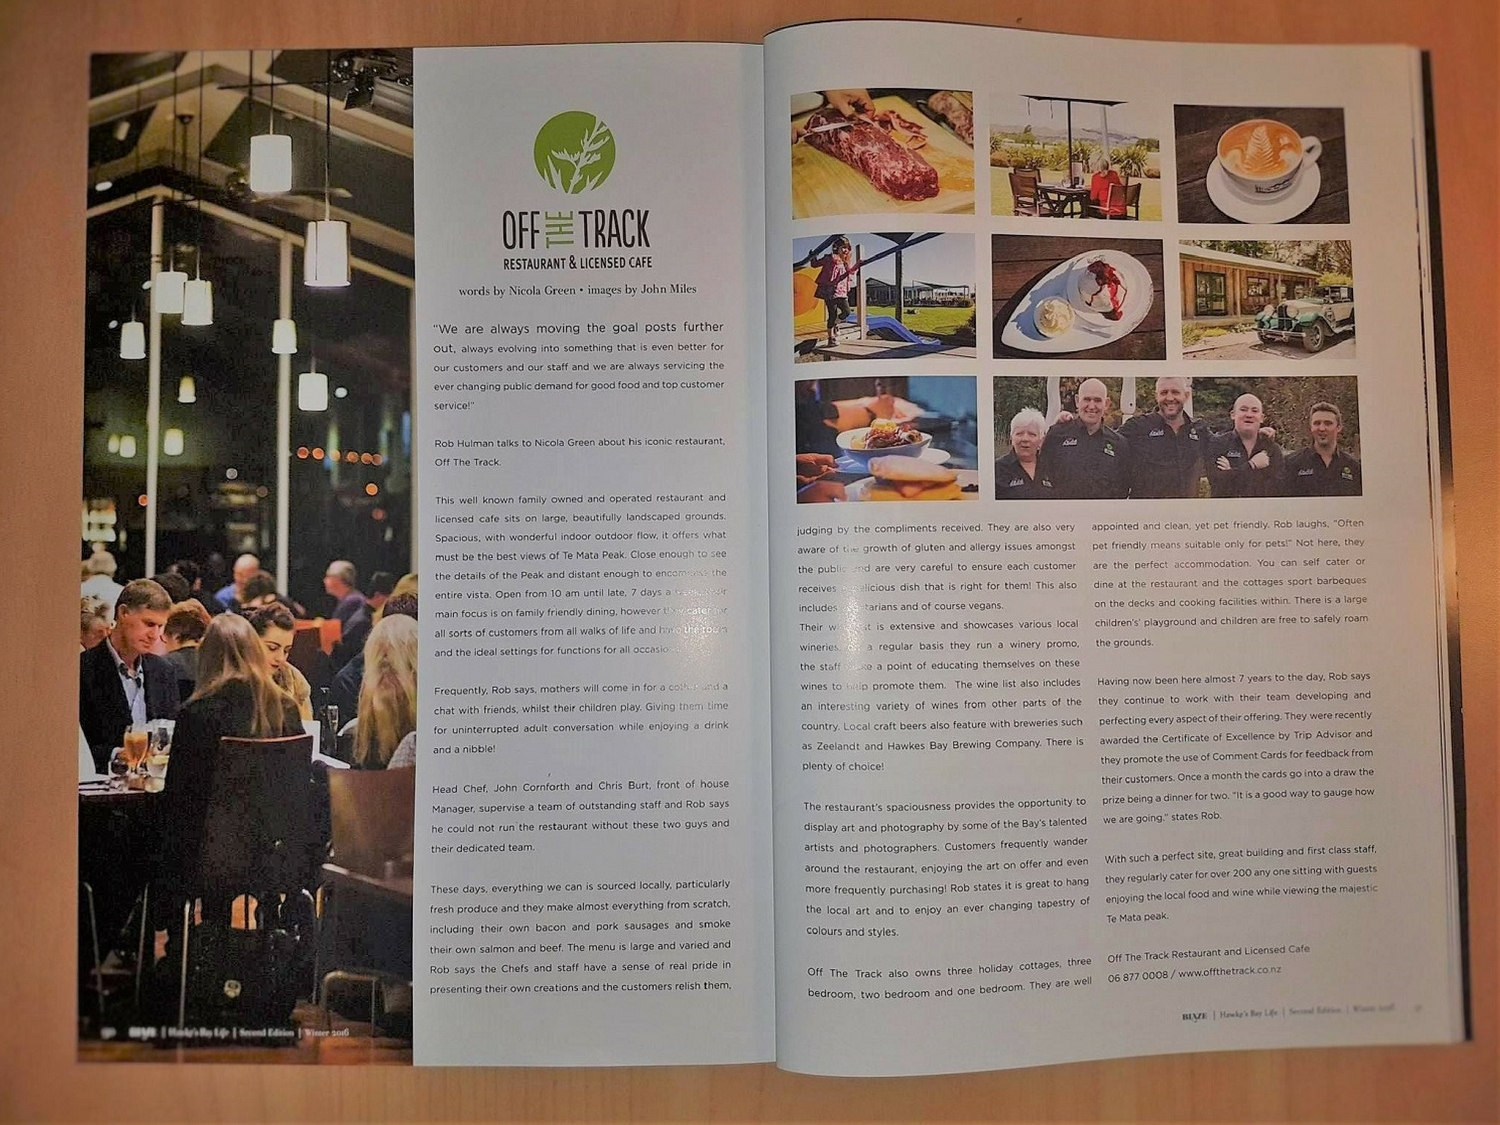 Hastings Restaurants like Off The Track are featured regularly in Blaze Magazine